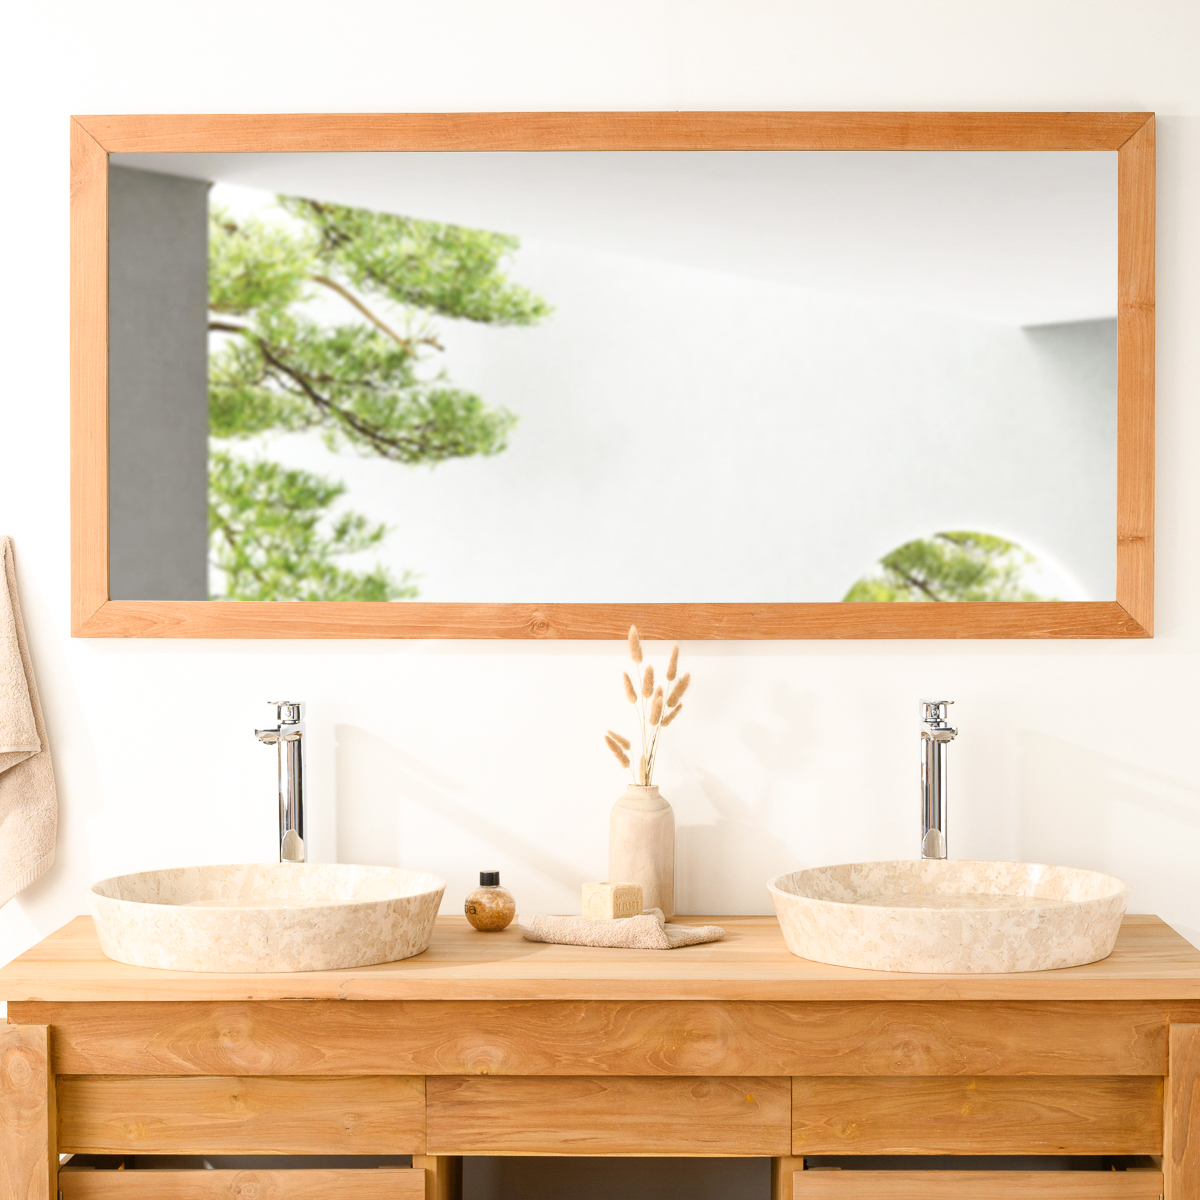 Grand miroir rectangle en teck massif 145x70 for Grand miroir